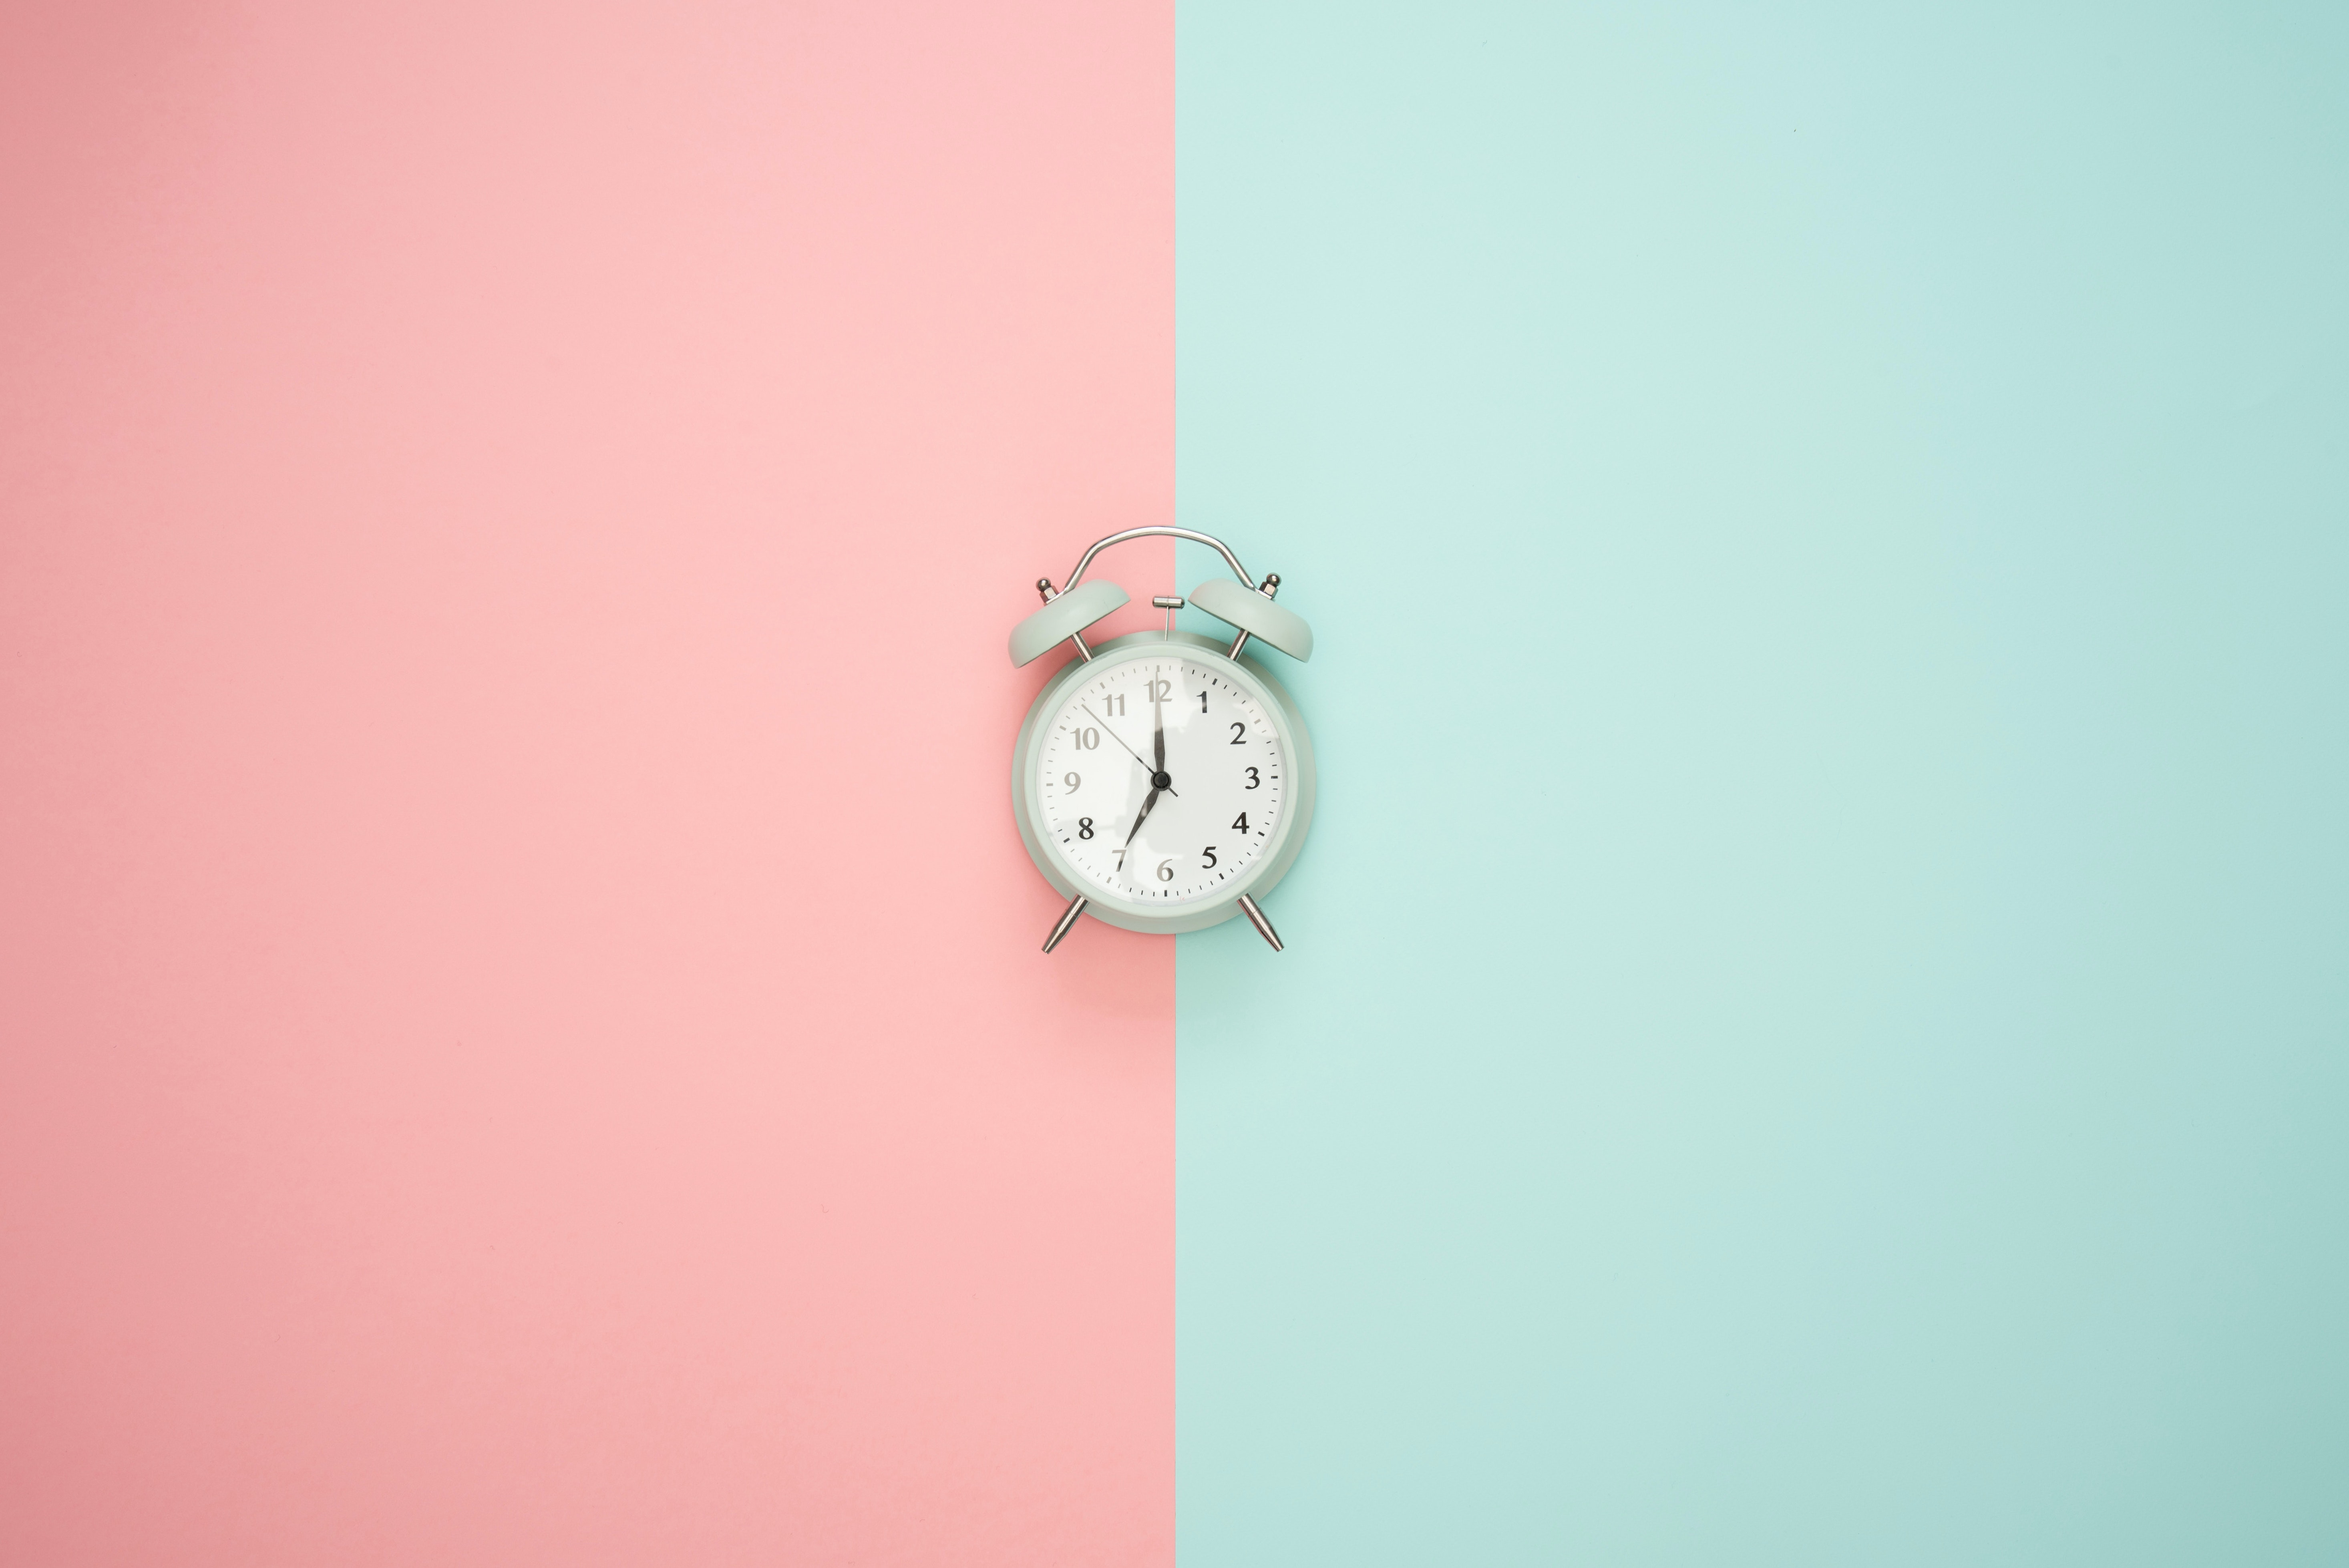 PInk and blue background picture of clock